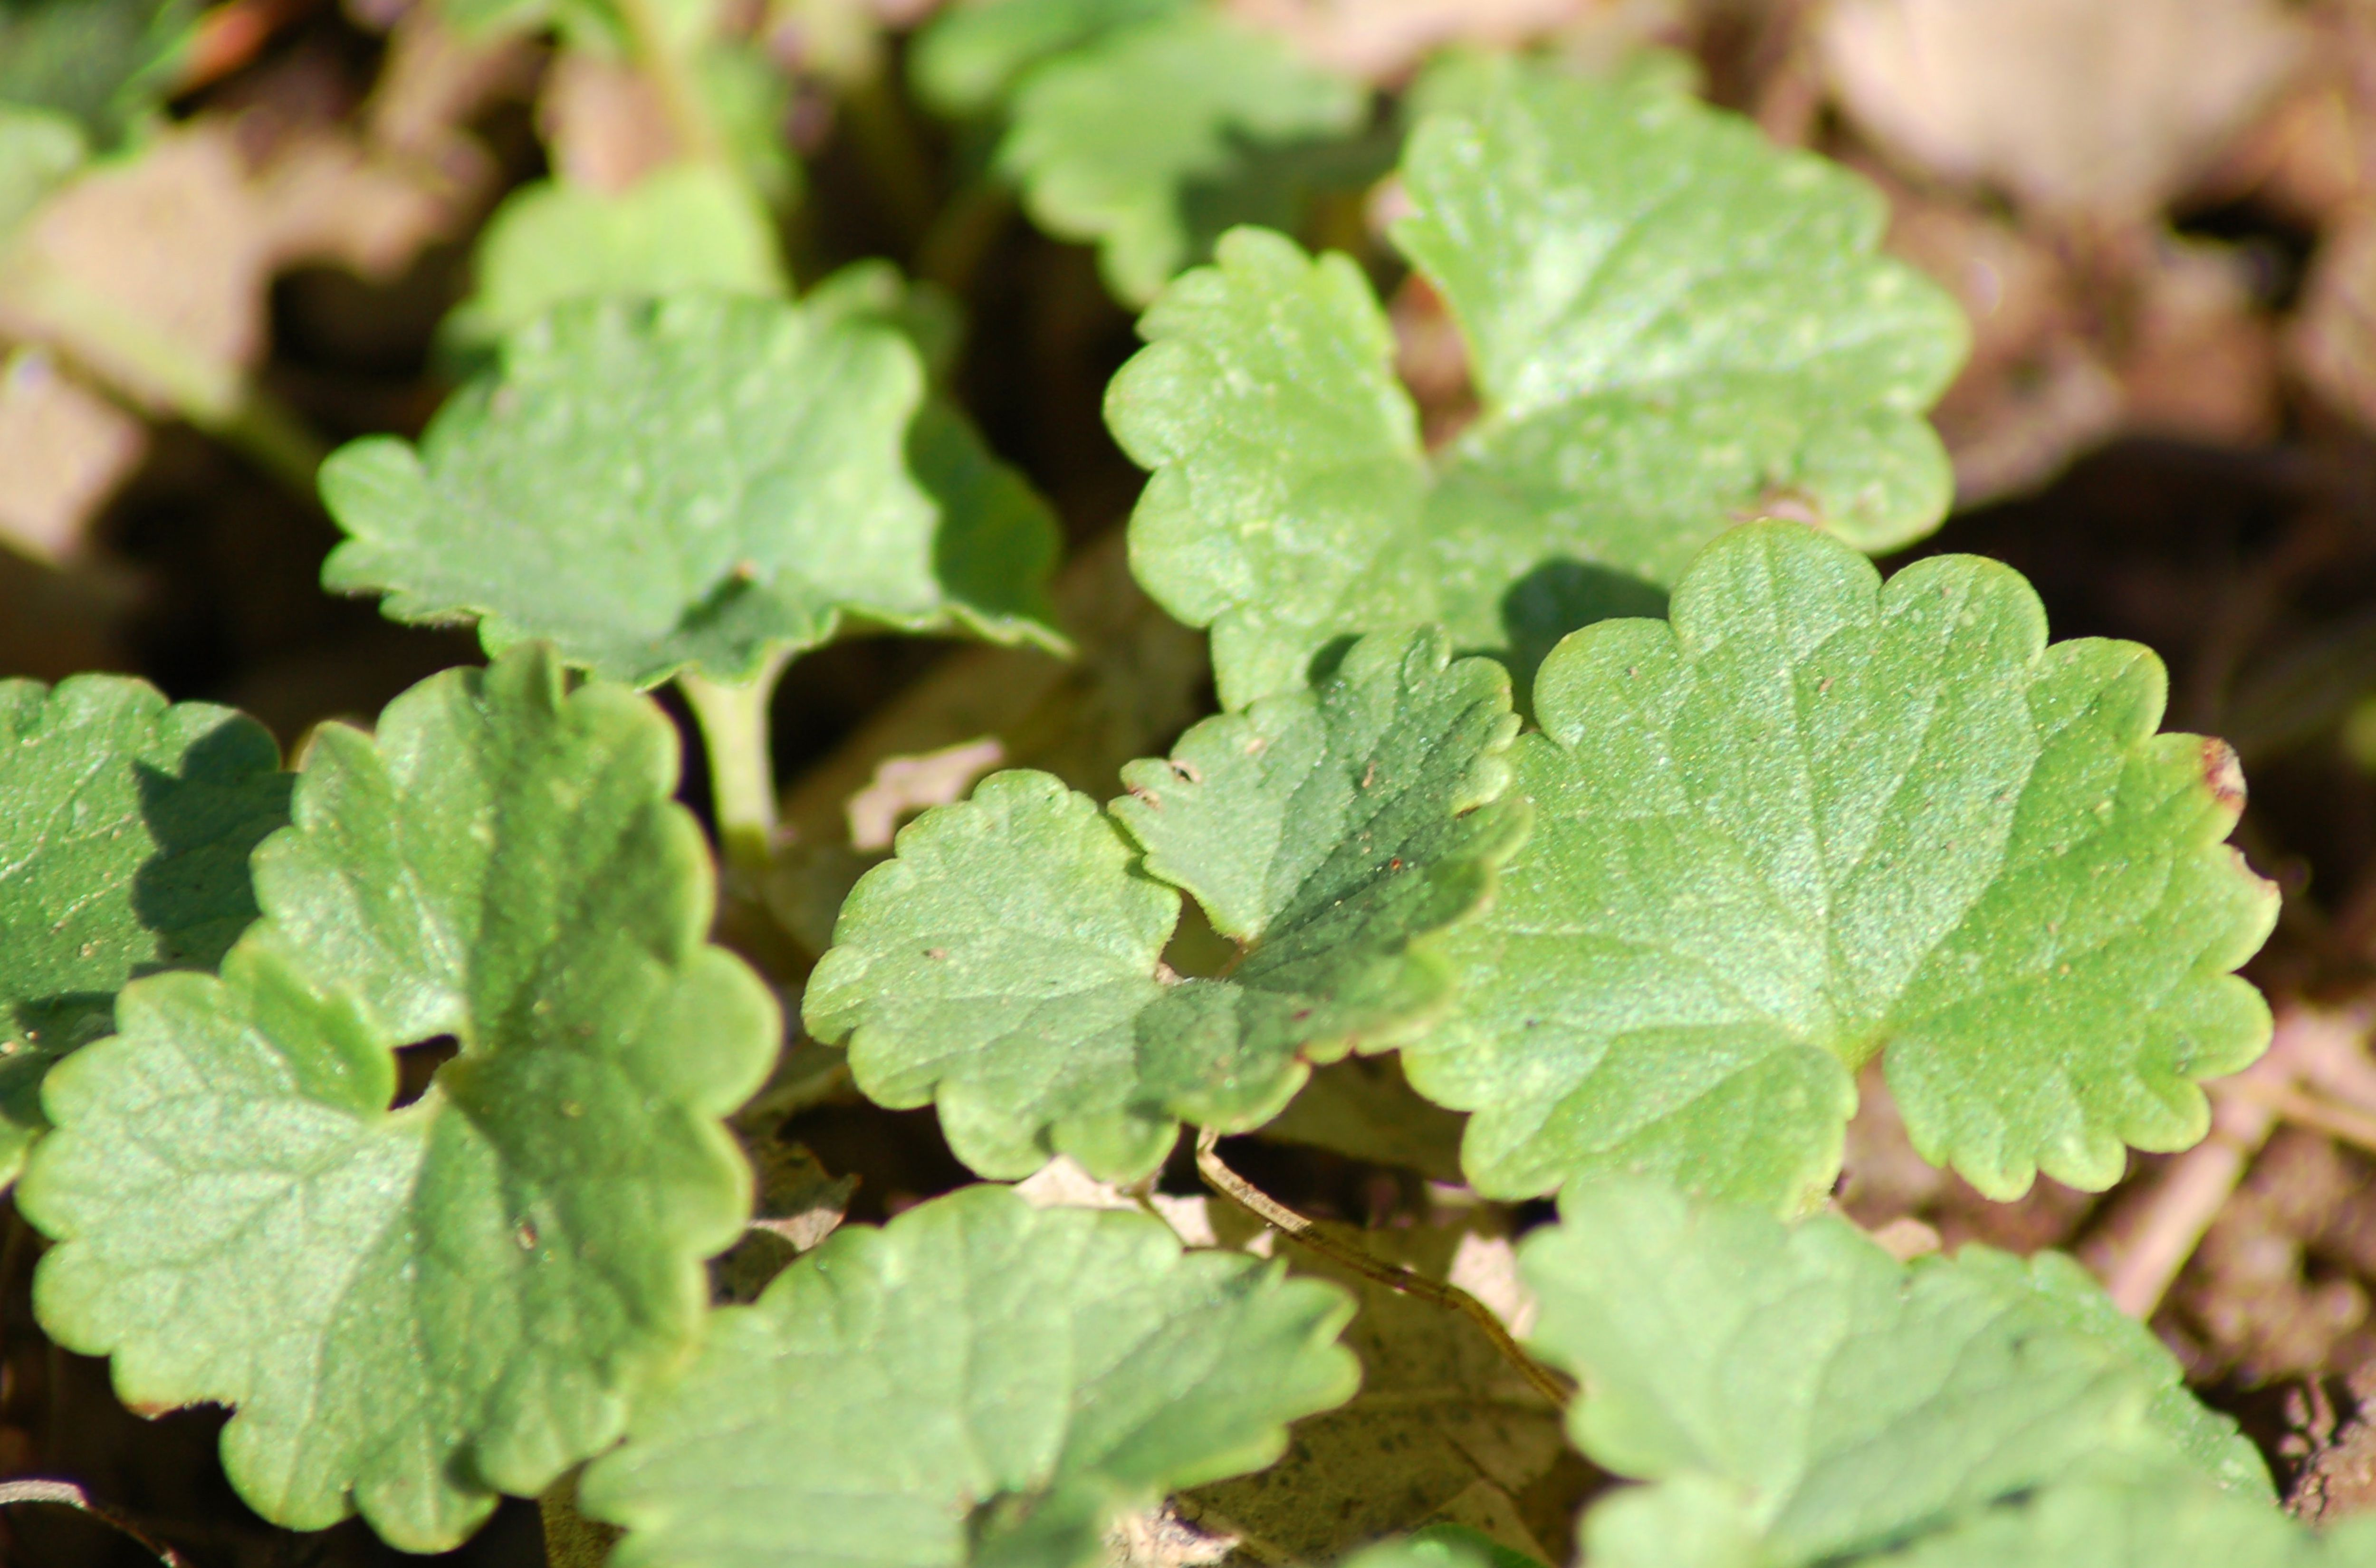 Identifying 9 Common Lawn Weeds